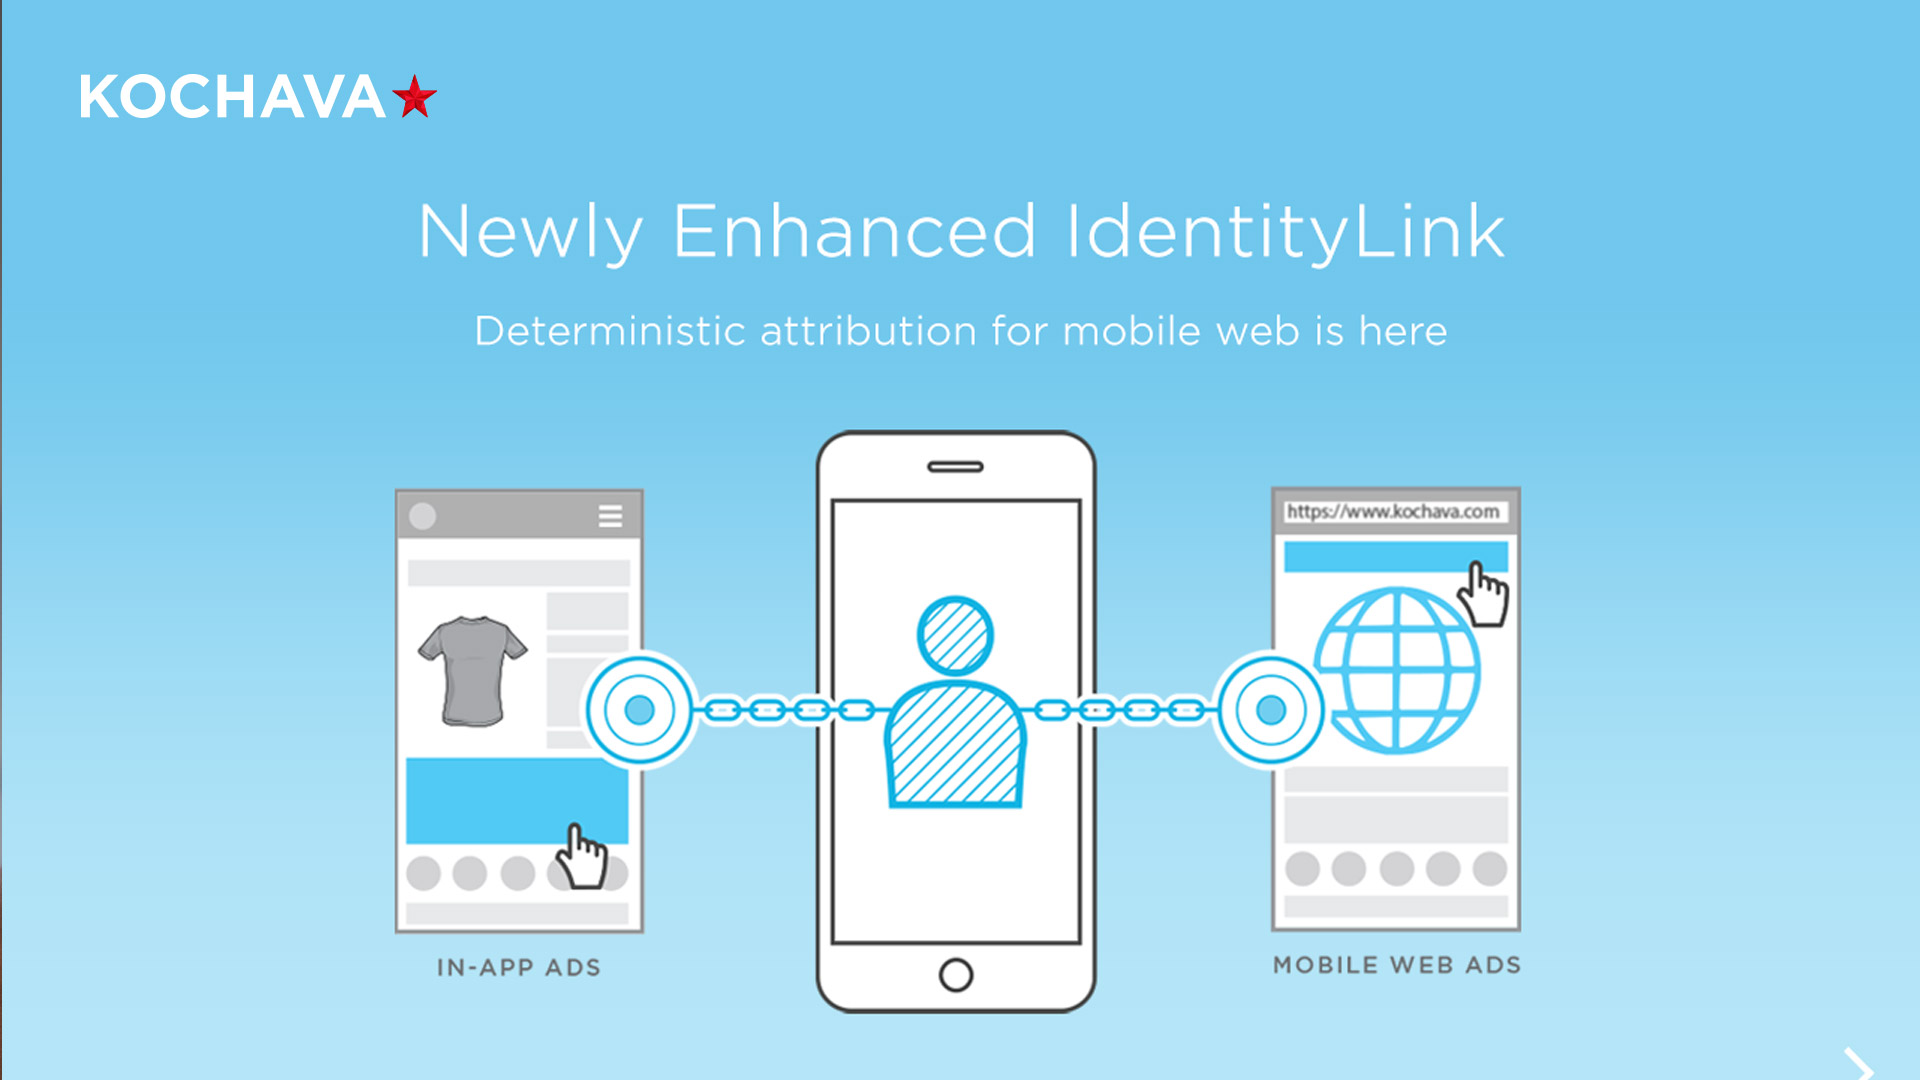 IdentityLink - Deterministic Attribution For Mobile Web is Here